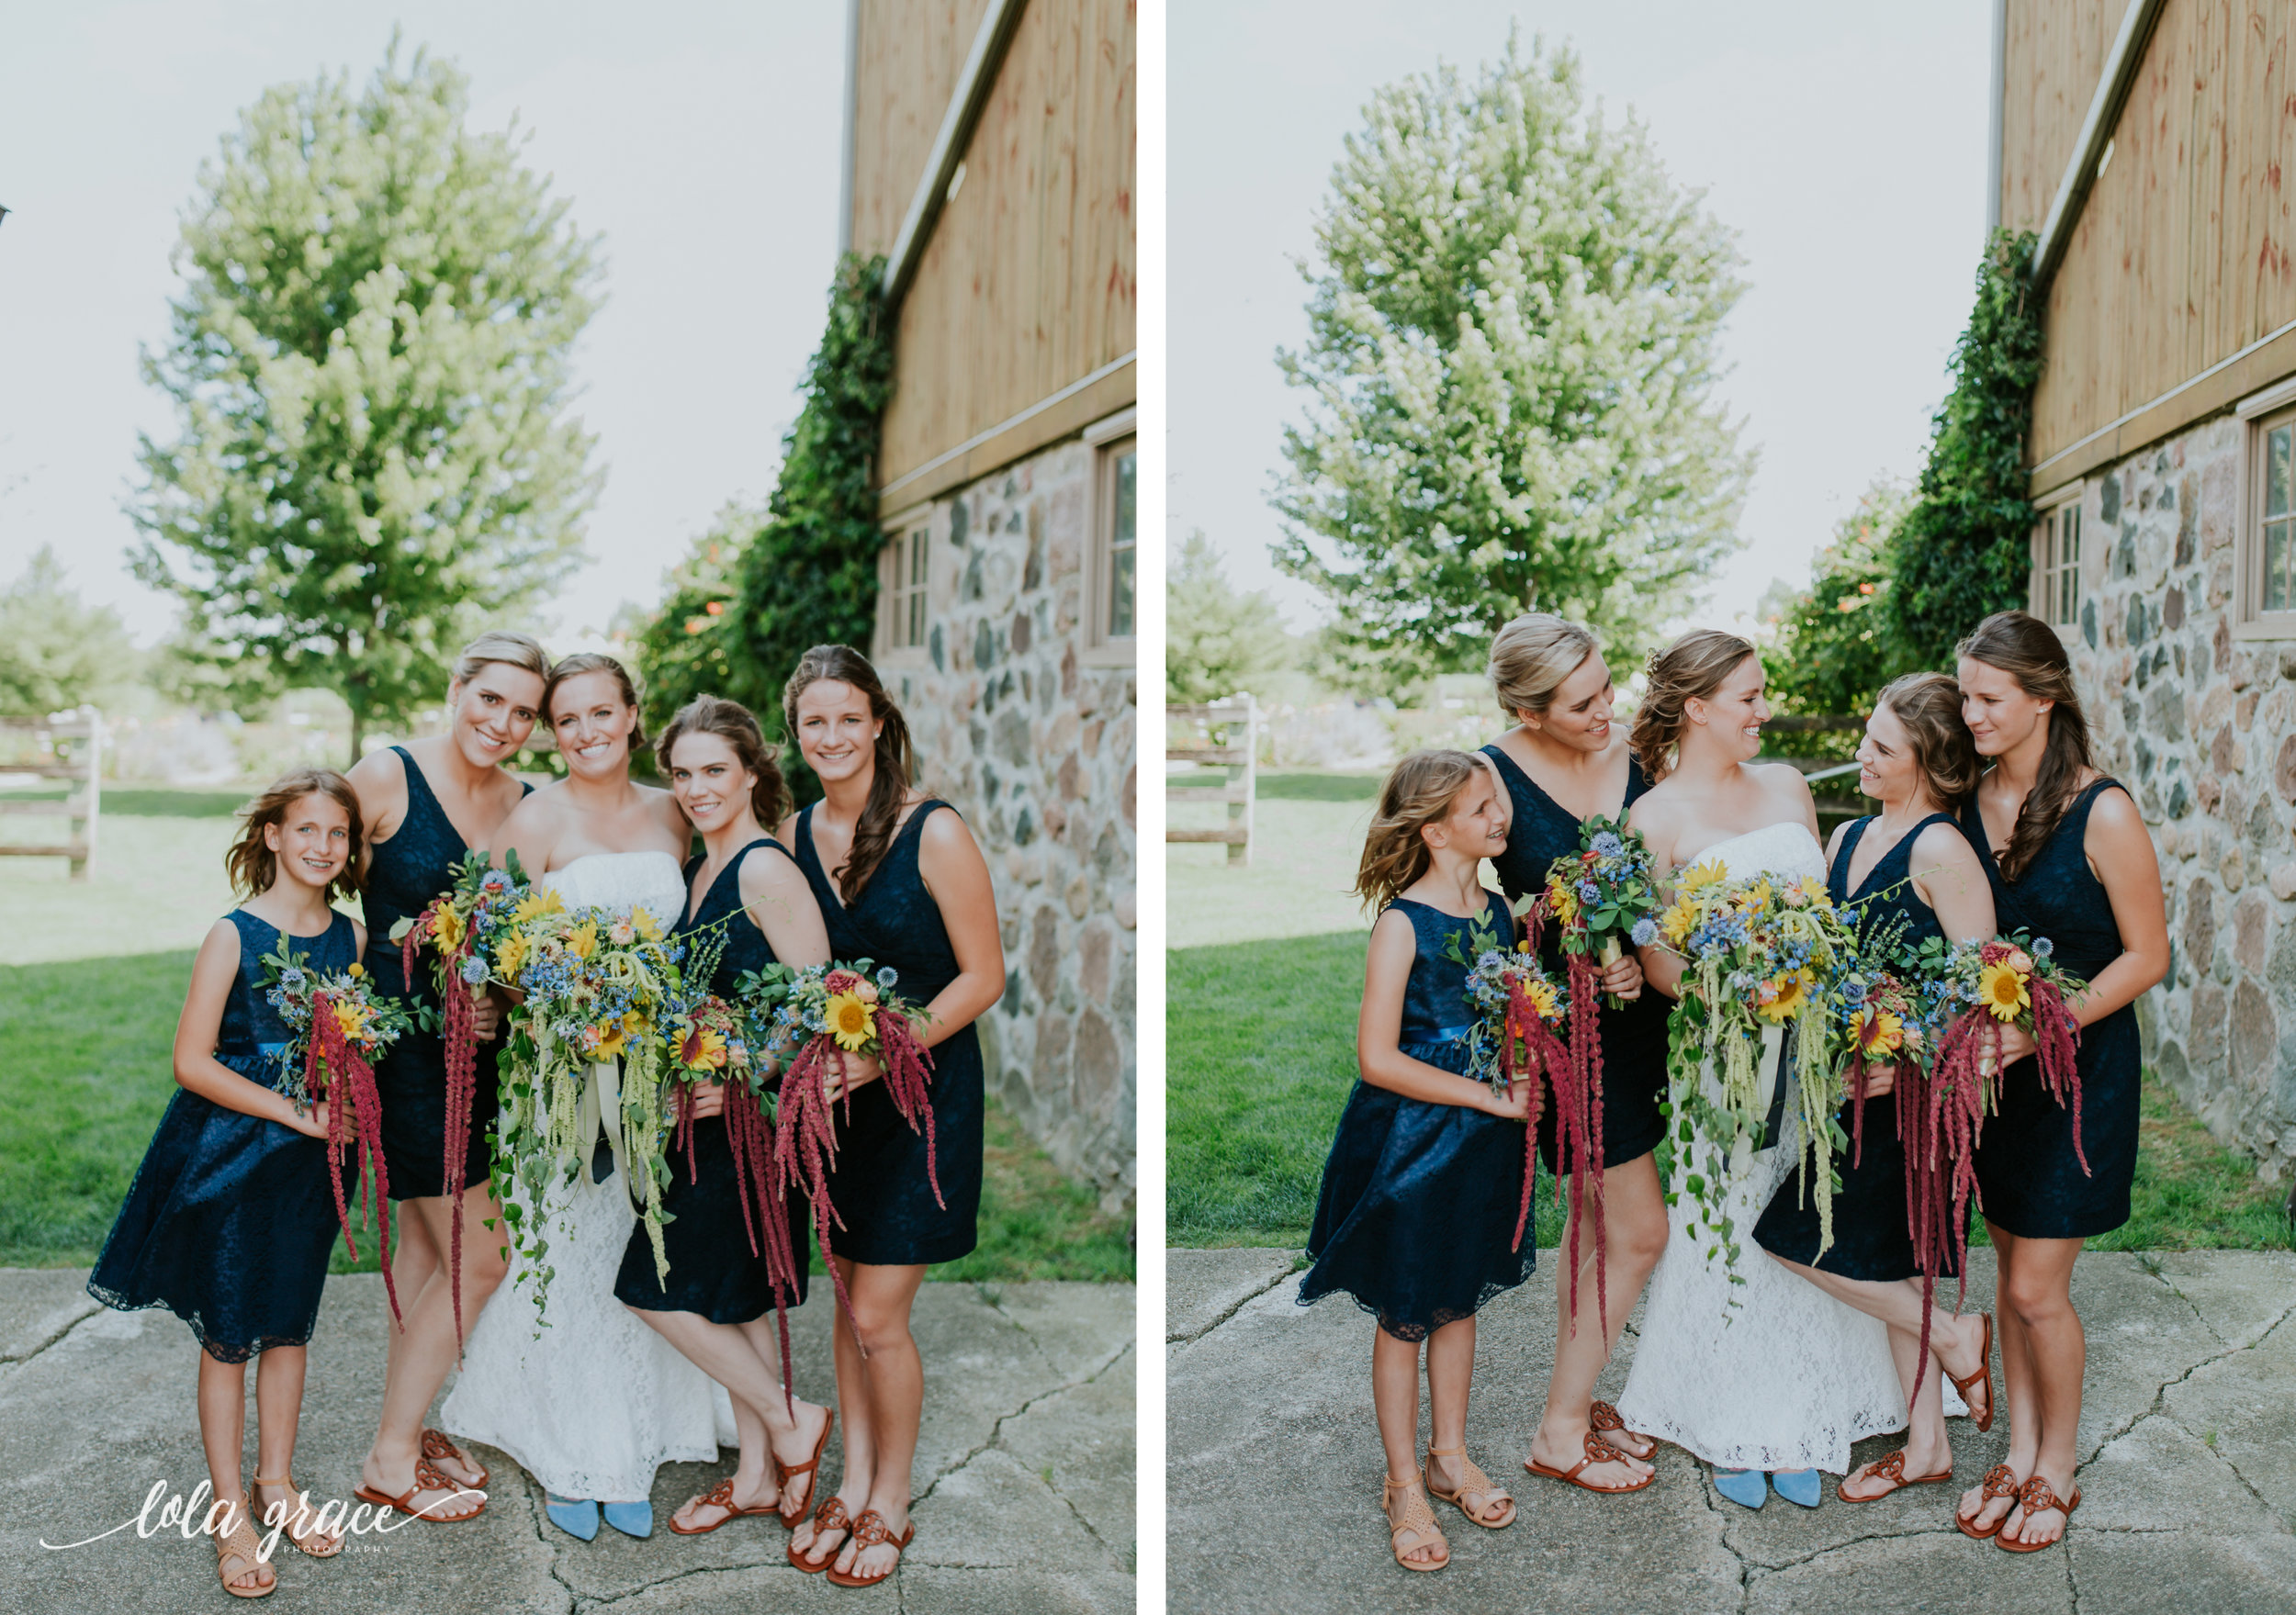 summer-wedding-at-misty-farms-ann-arbor-33.jpg